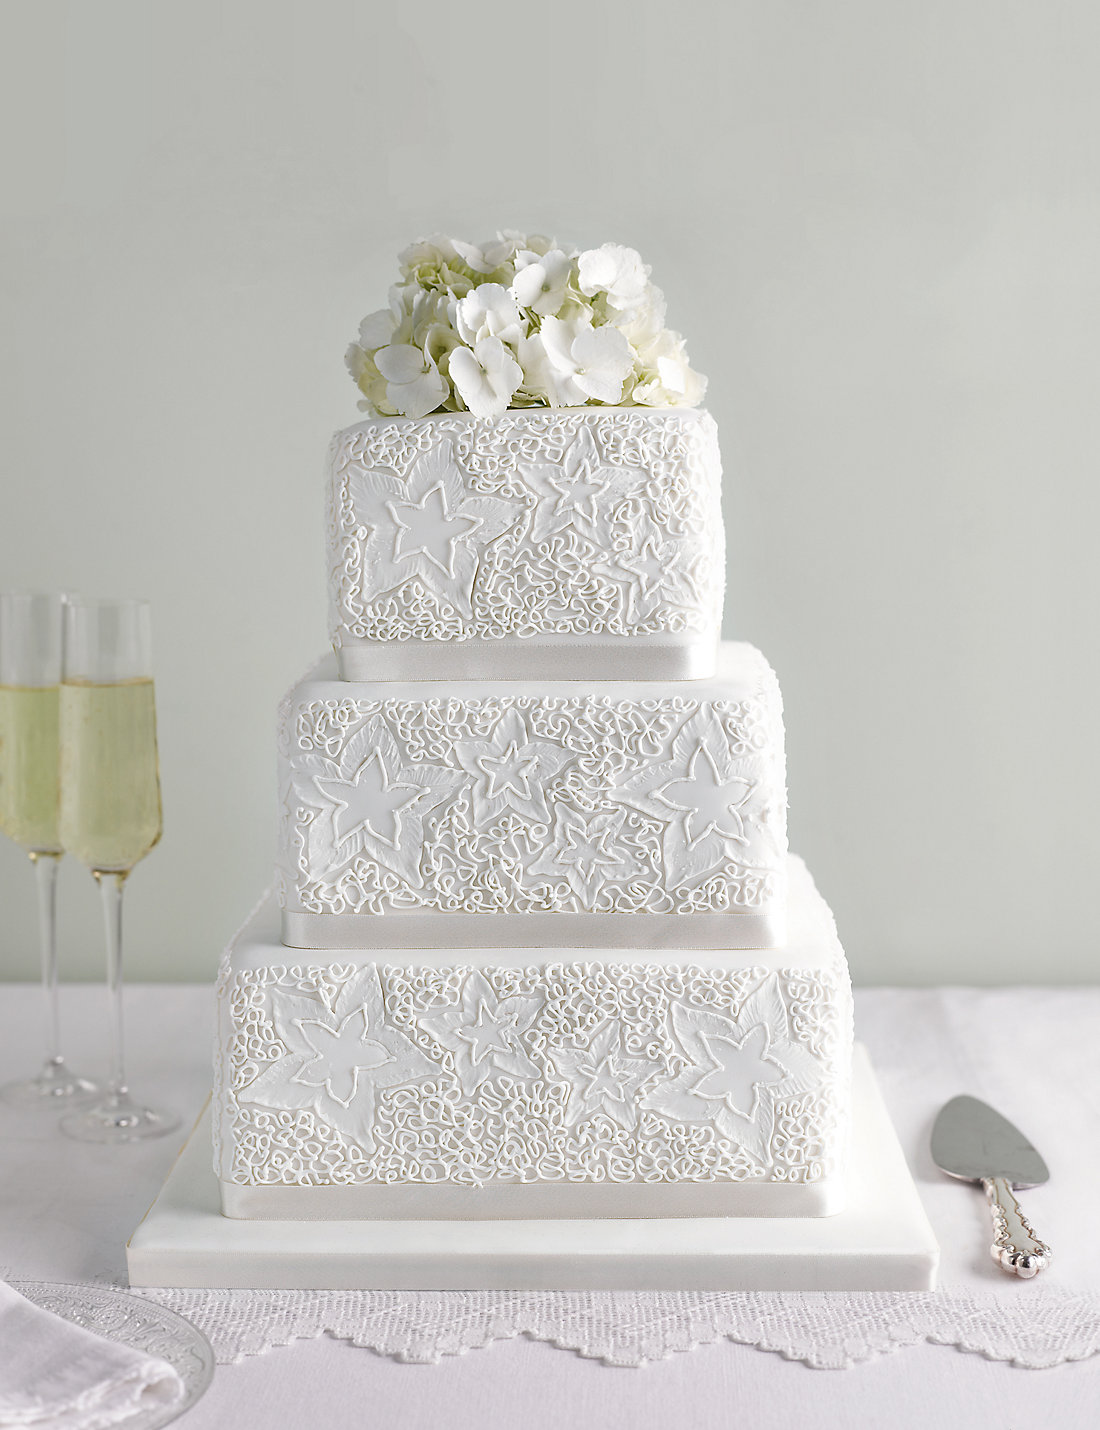 Lace Sponge Wedding Cake Available To Order Until 31st January 2017